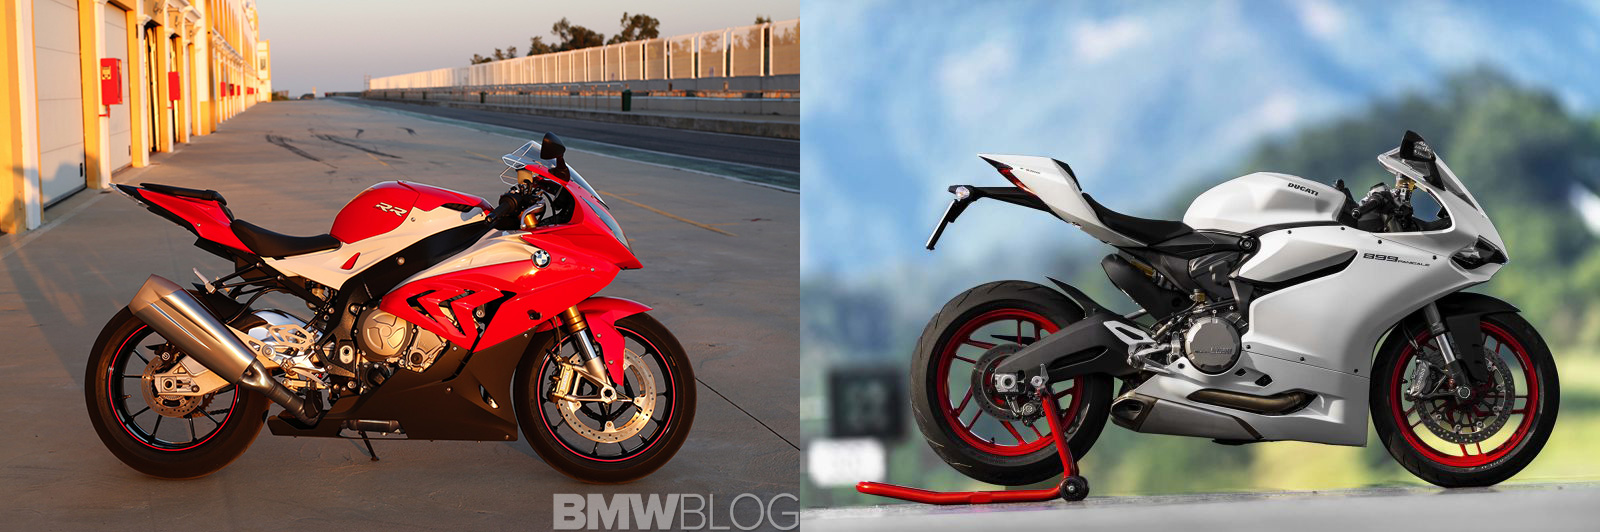 BMW S 1000 RR Ducati 959 Panigale